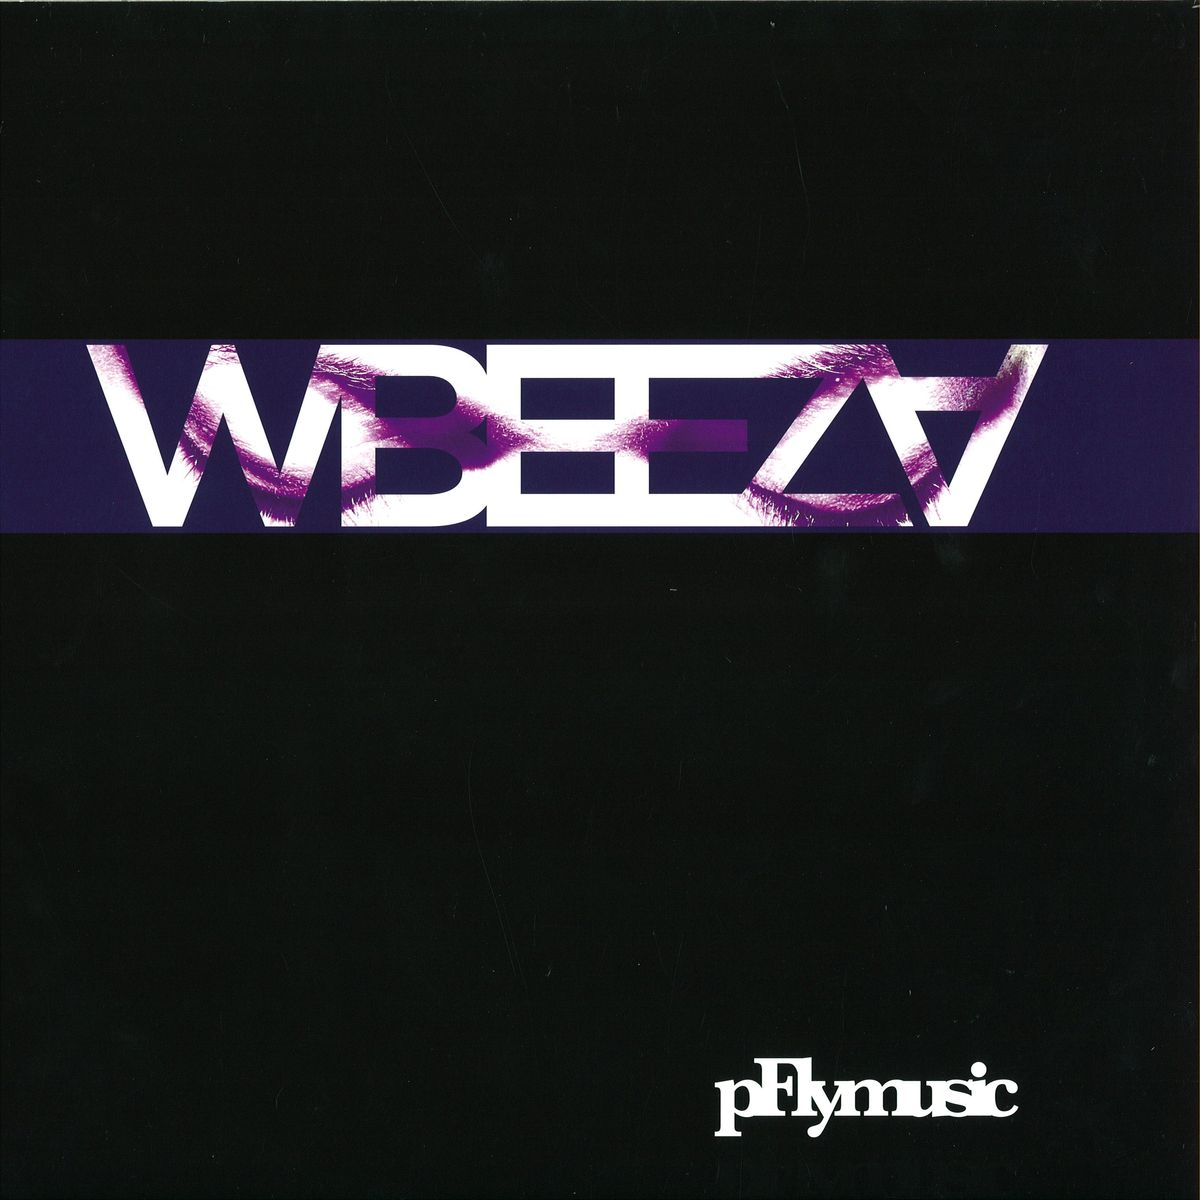 Wbeeza – Purple EP (P Fly Music)